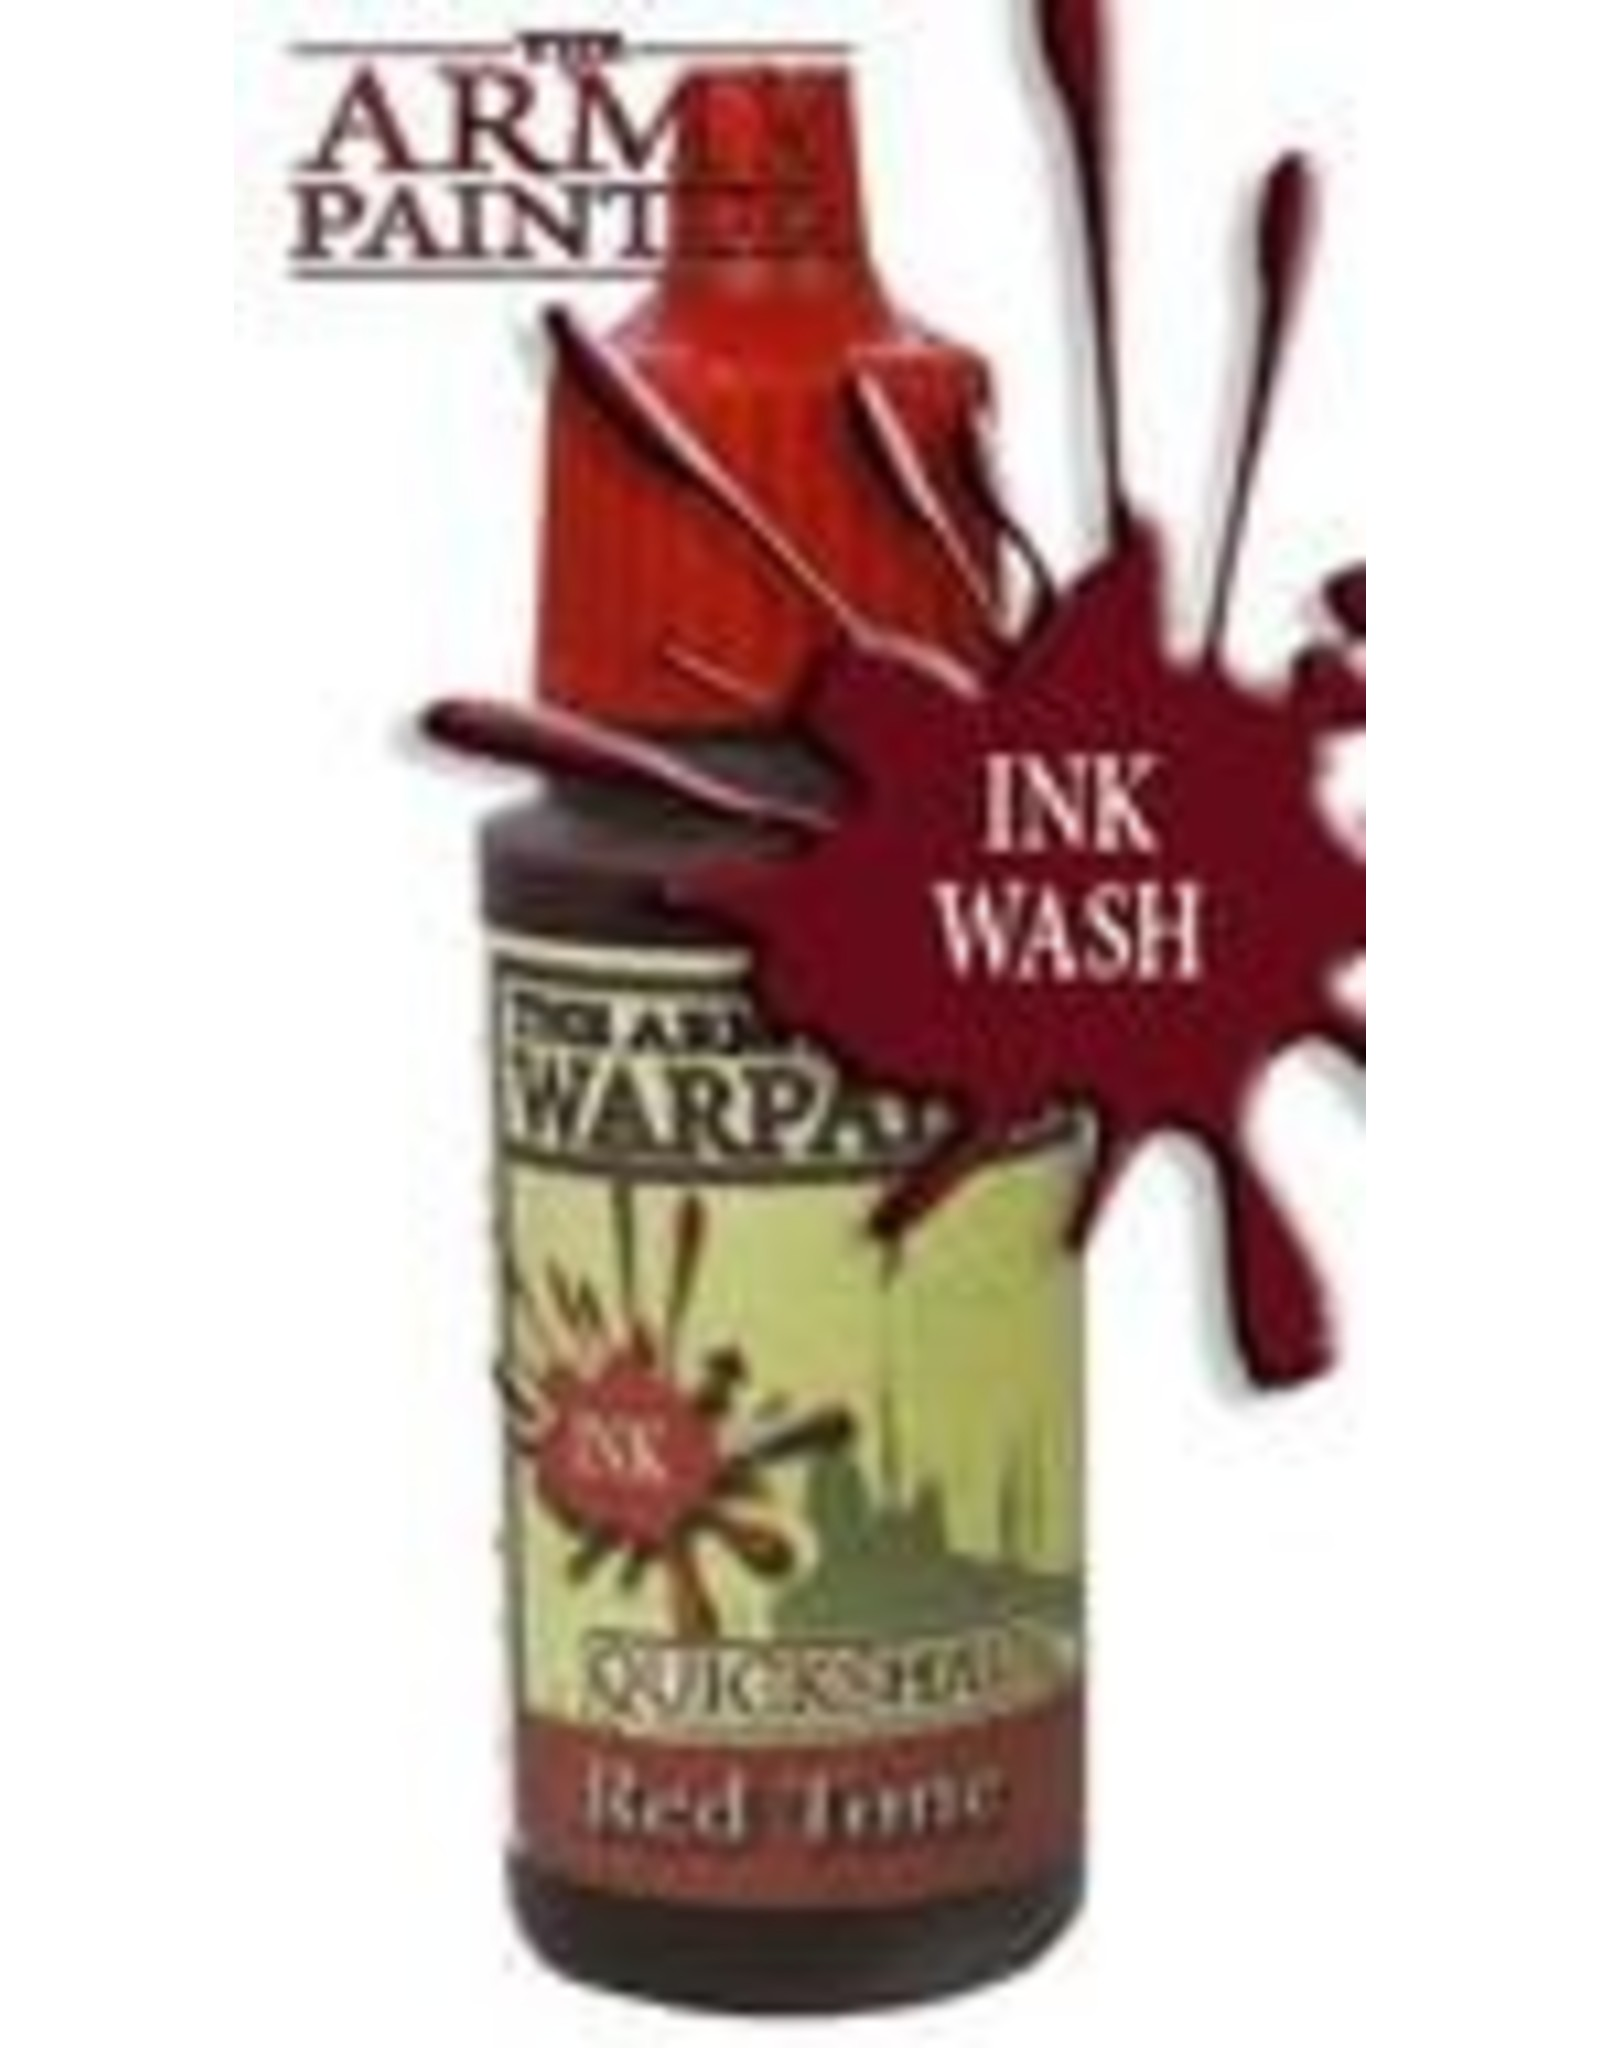 Army Painter Army Painter Washes: Red Tone